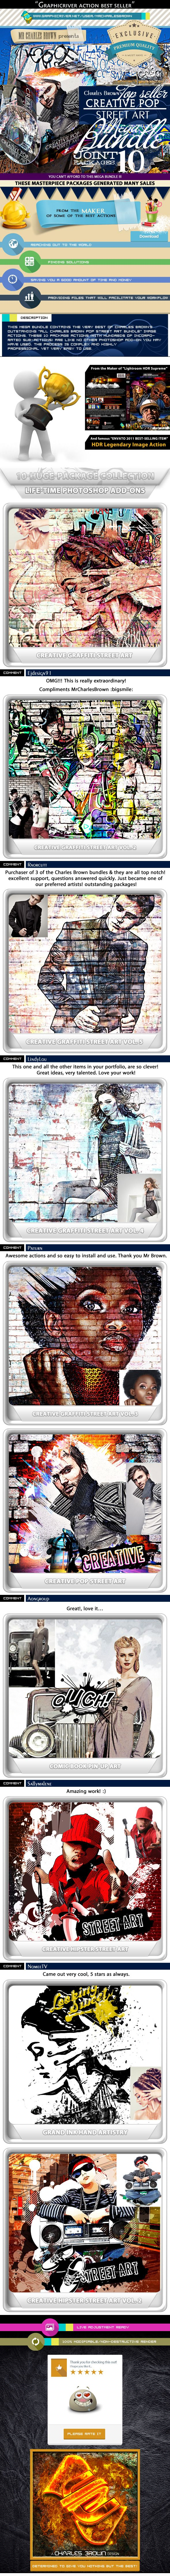 All Charles Brown's Pop Street Art Bundle #photoeffects #ps #action Download: http://graphicriver.net/item/all-charles-browns-pop-street-art-bundle/6778757?ref=ksioks